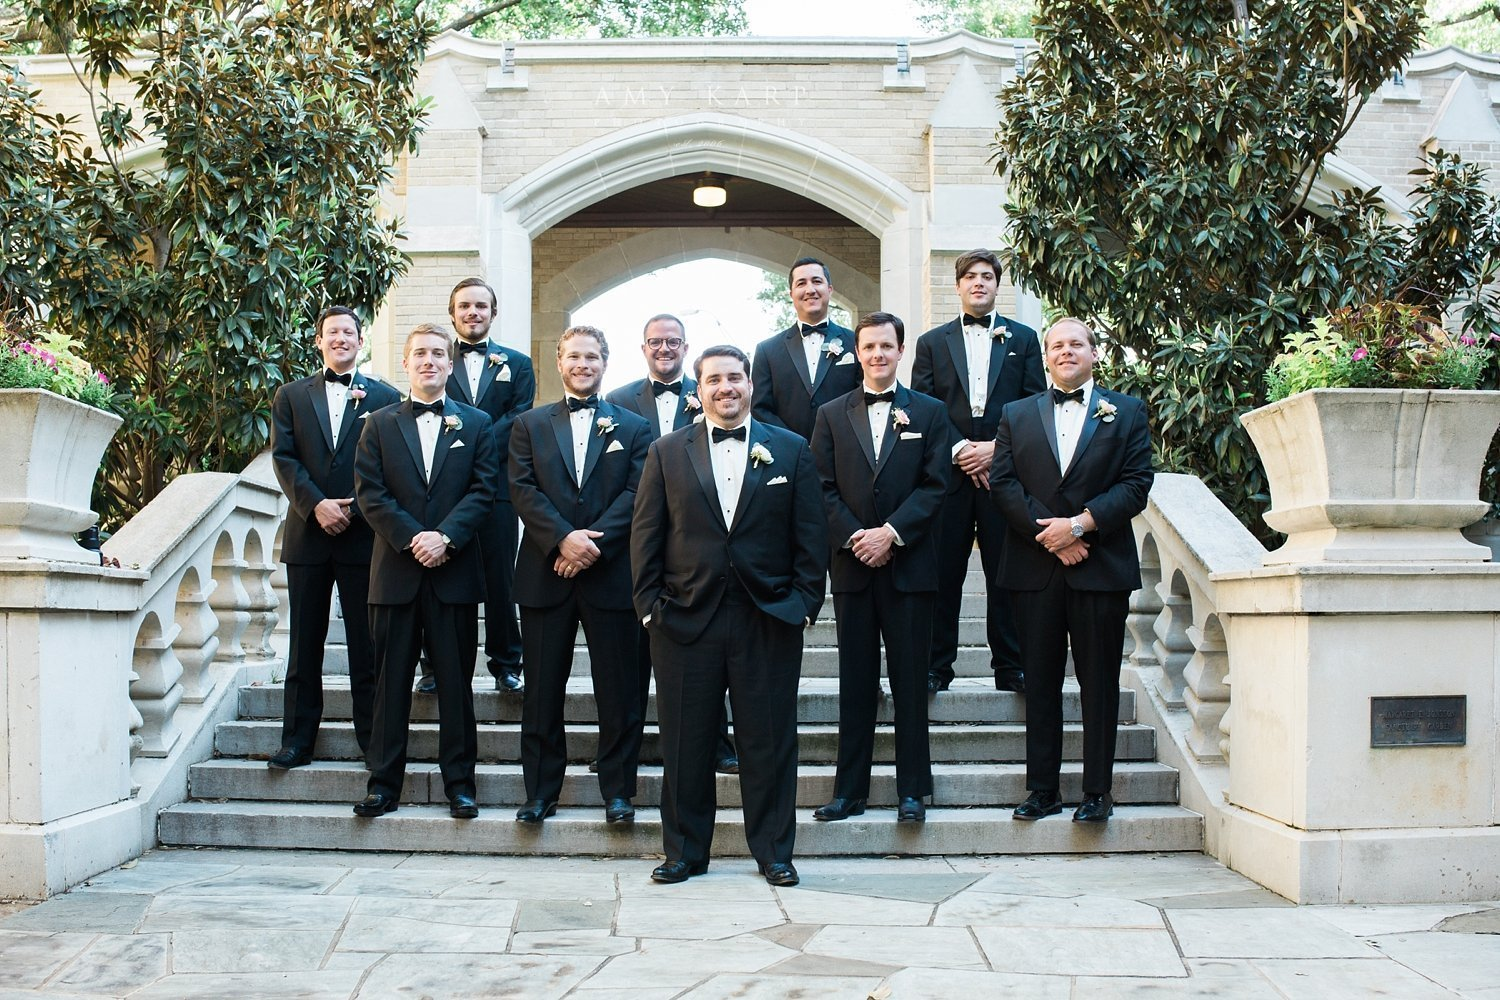 dallas-wedding-dcc-highland-park-hpumc-amanda-jm-08